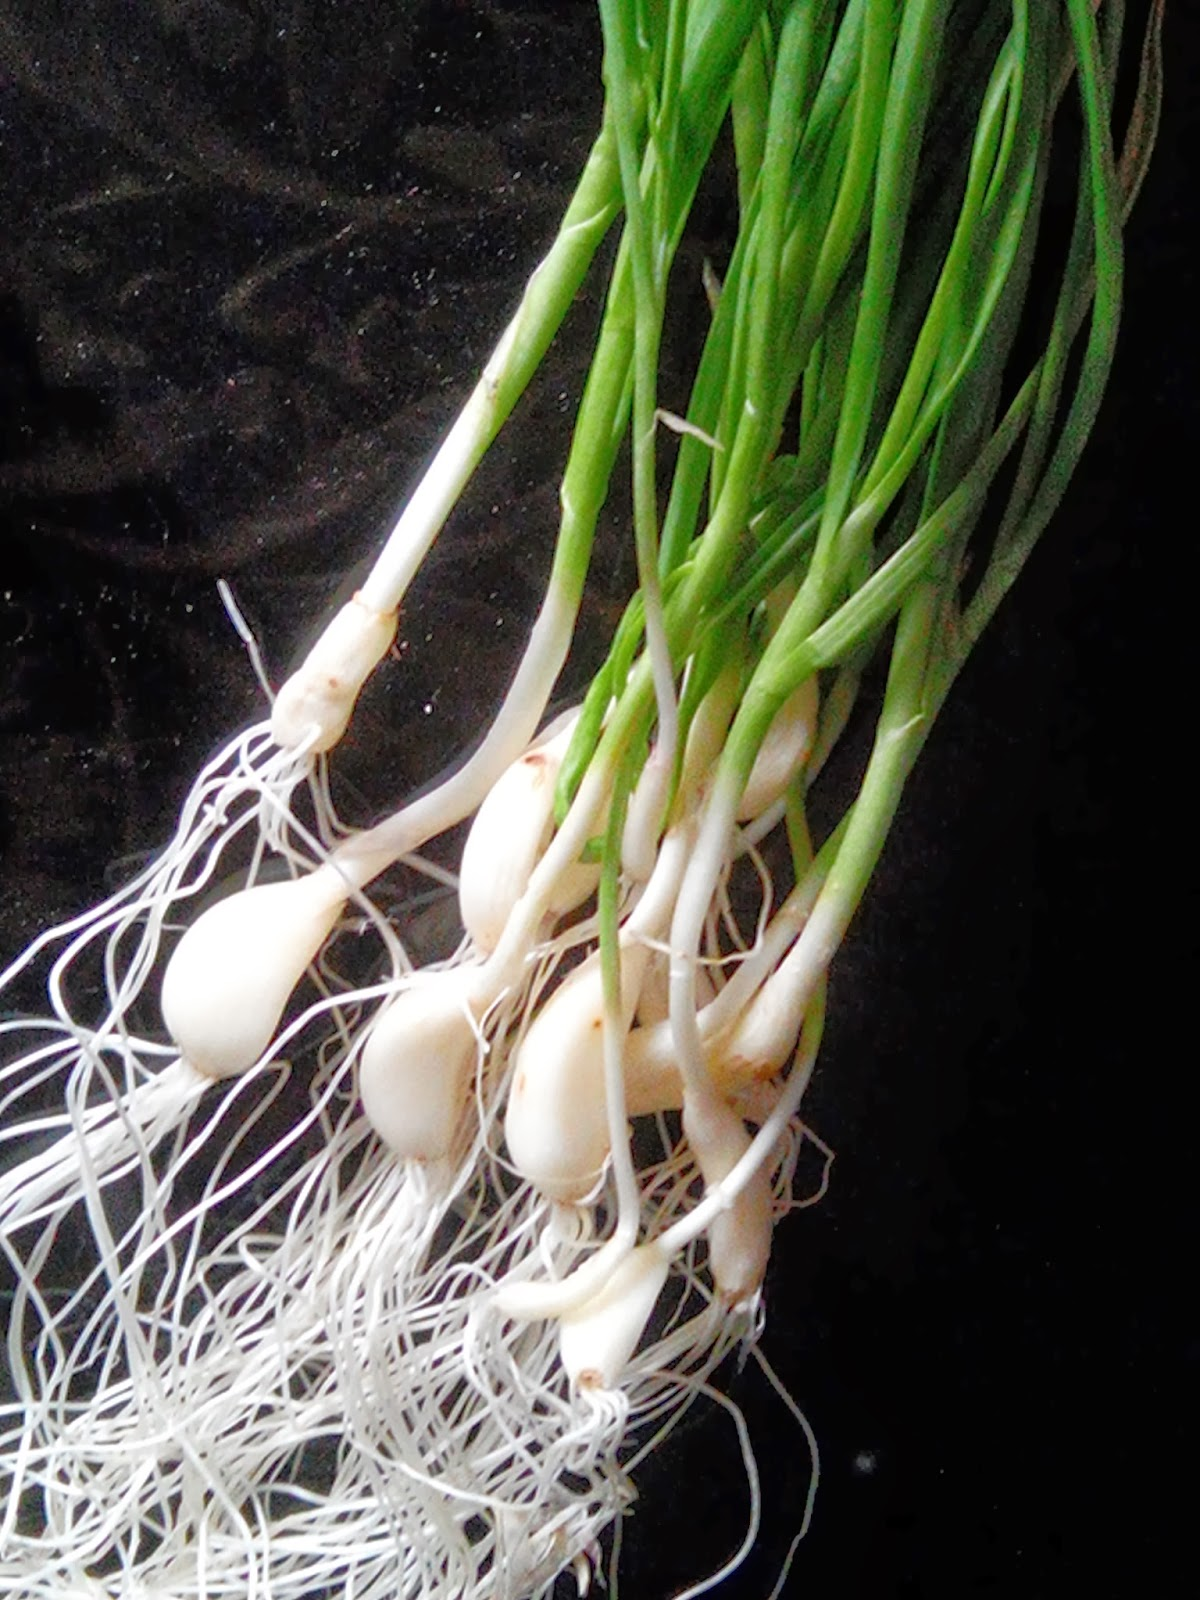 ... markets now a days green garlic available in winters generally green